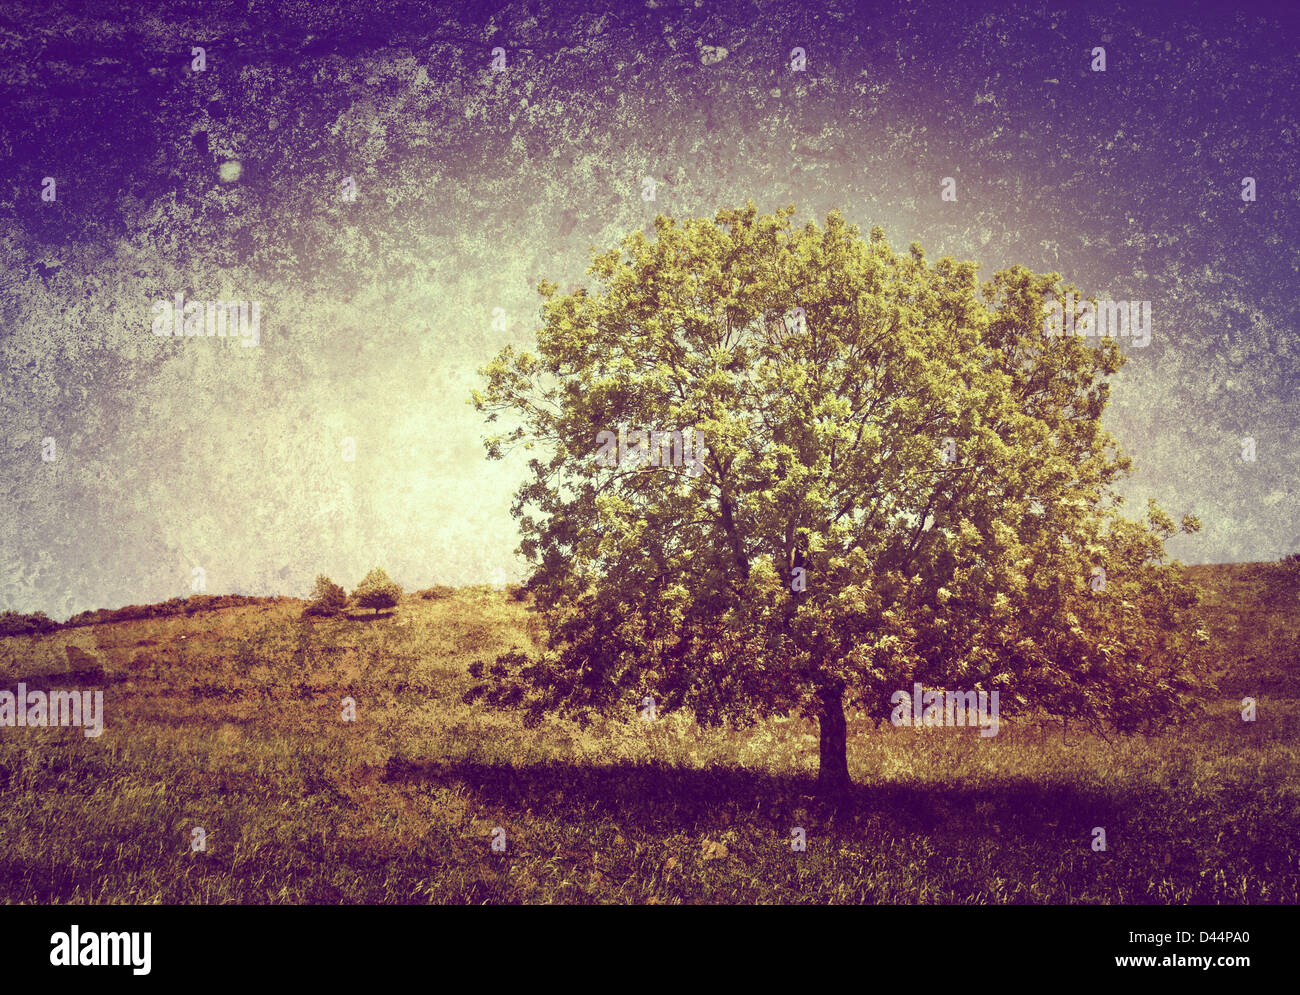 tree on textured background - Stock Image